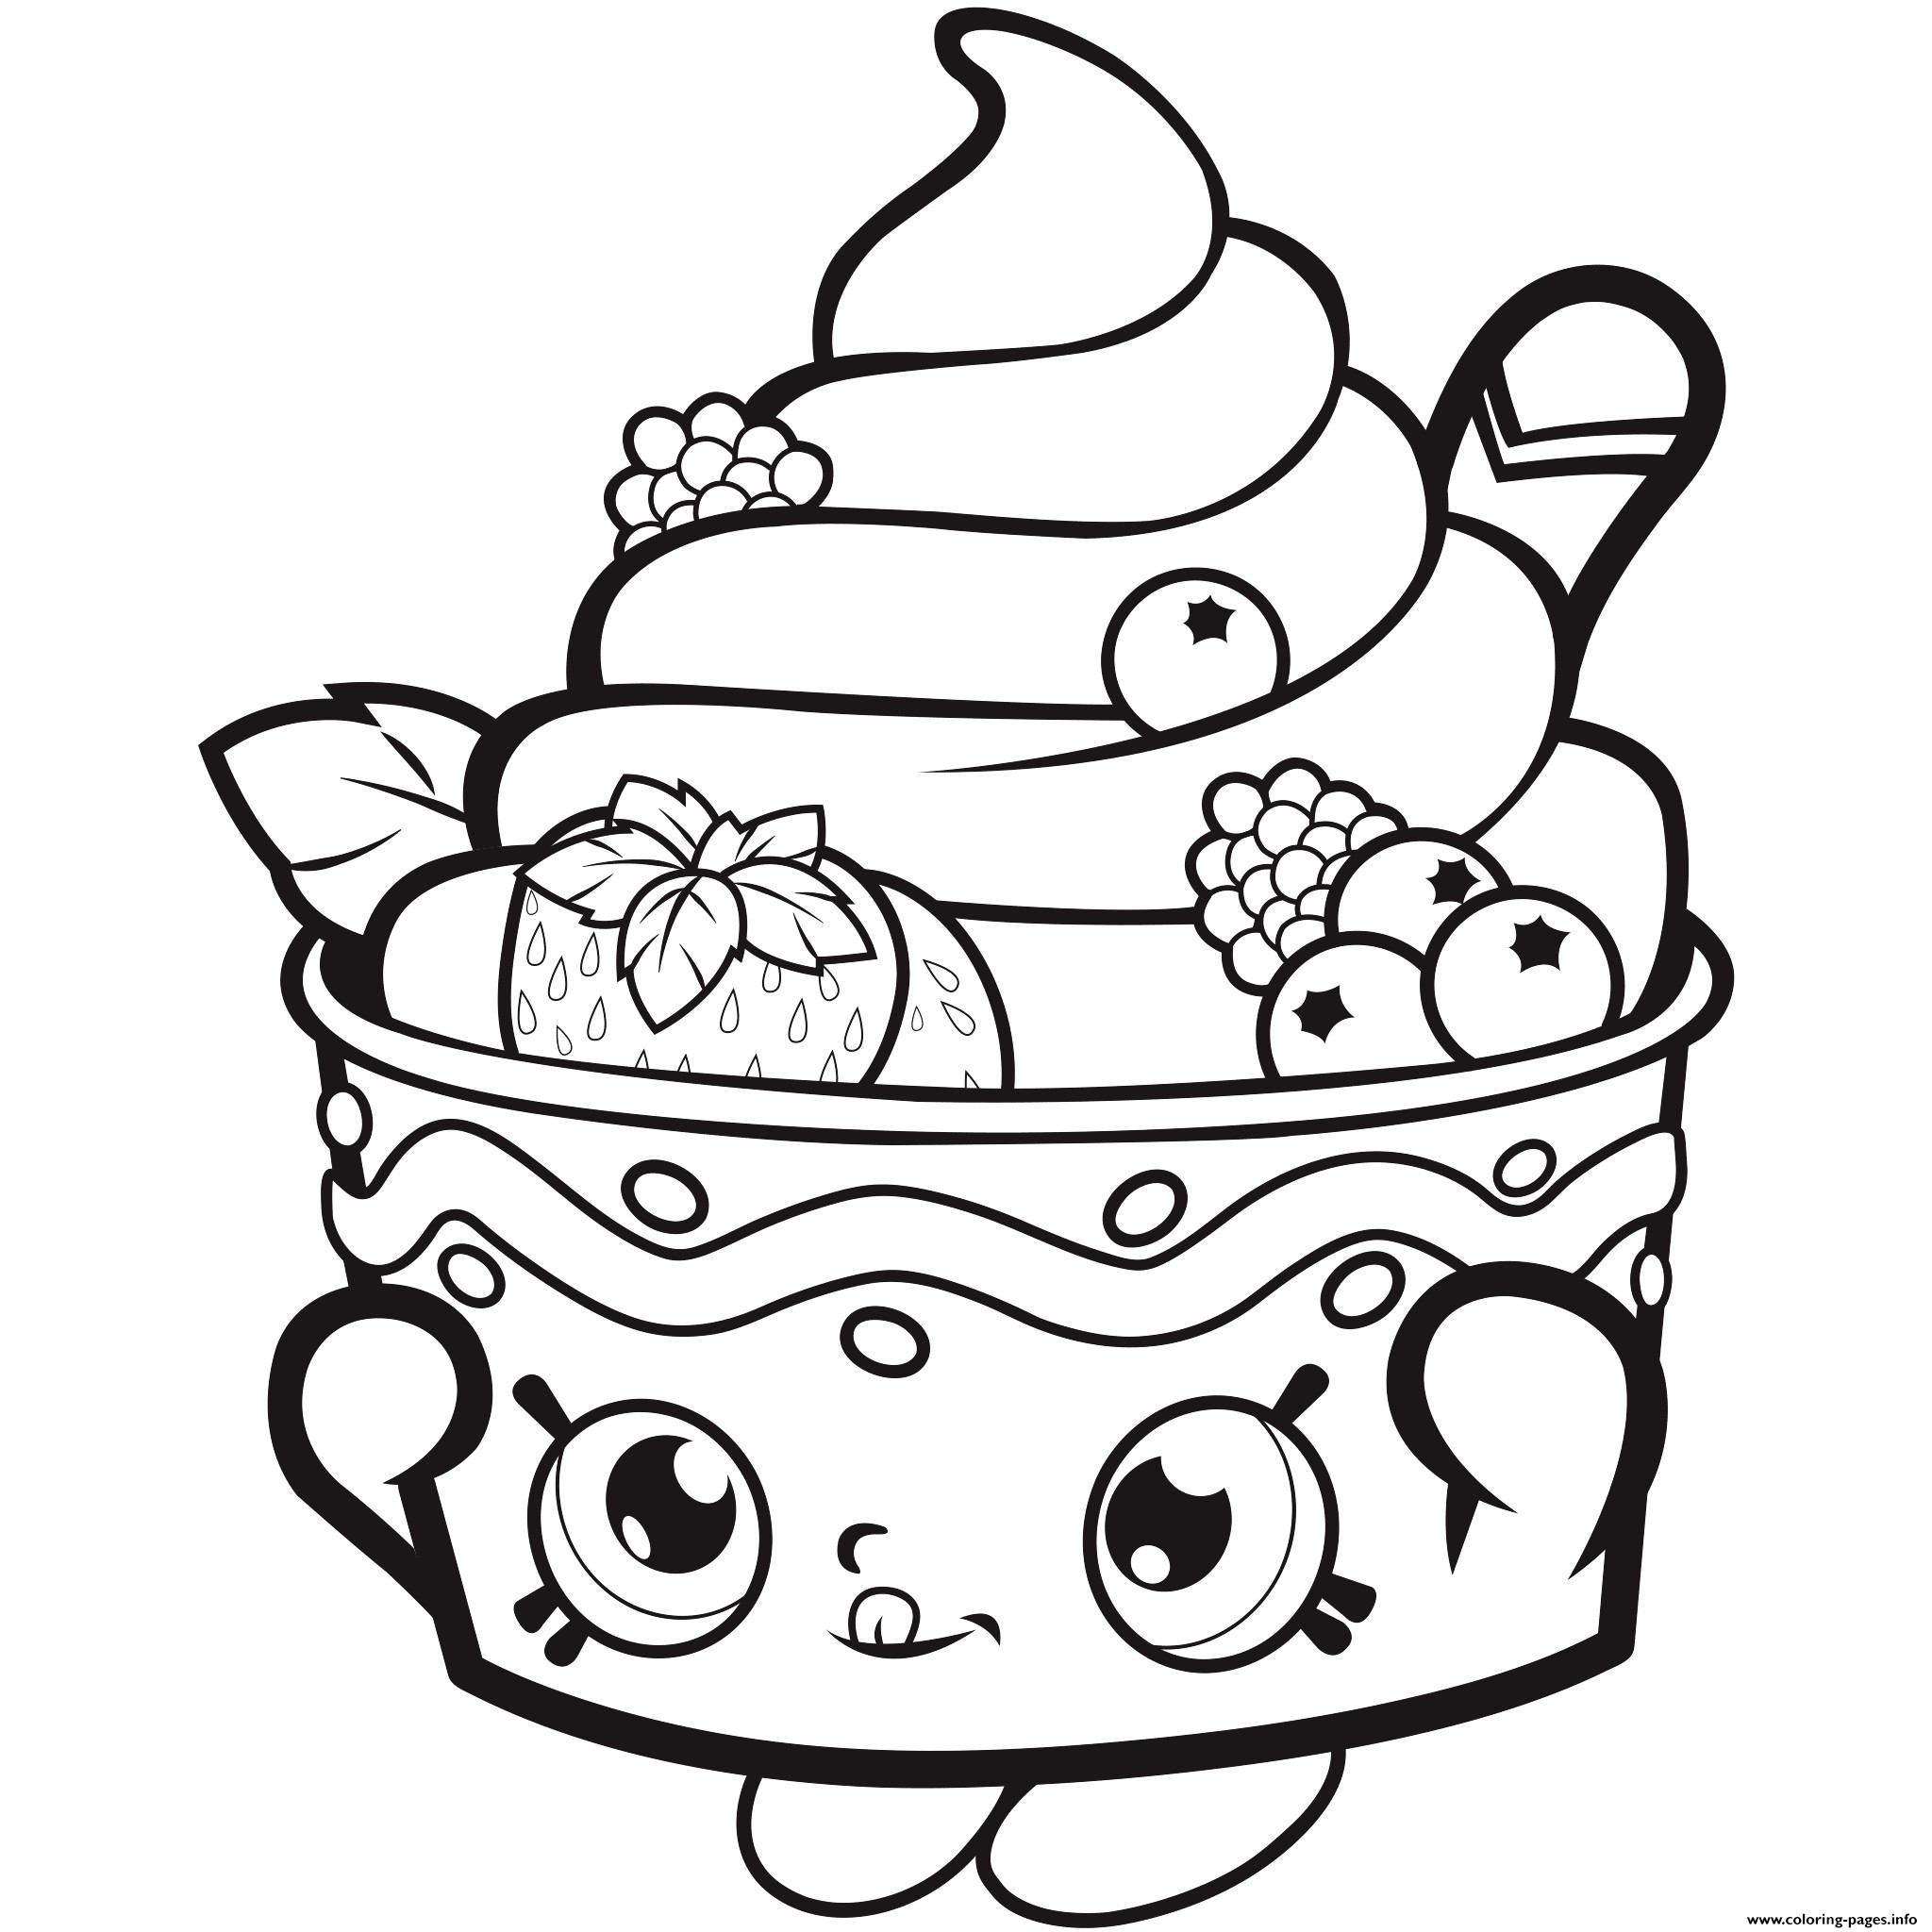 Shopkins Cupcake Queen Coloring Pages At GetDrawings